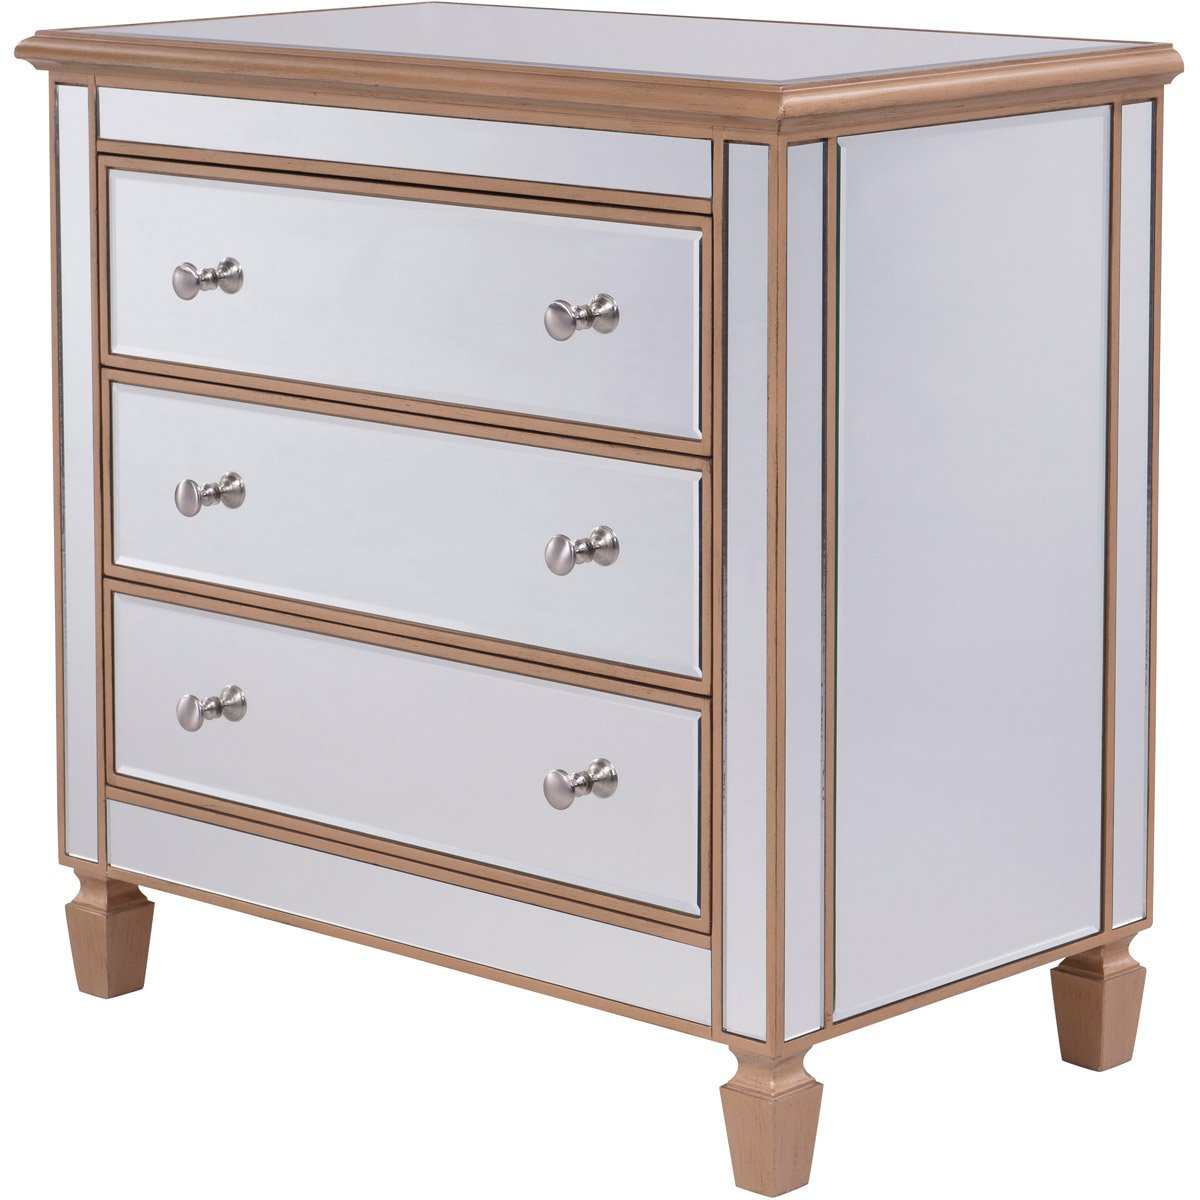 Contempo 33 X 32 3 Drawer Cabinet -Antique Gold Finish (Mf6-1119G) Cabinet